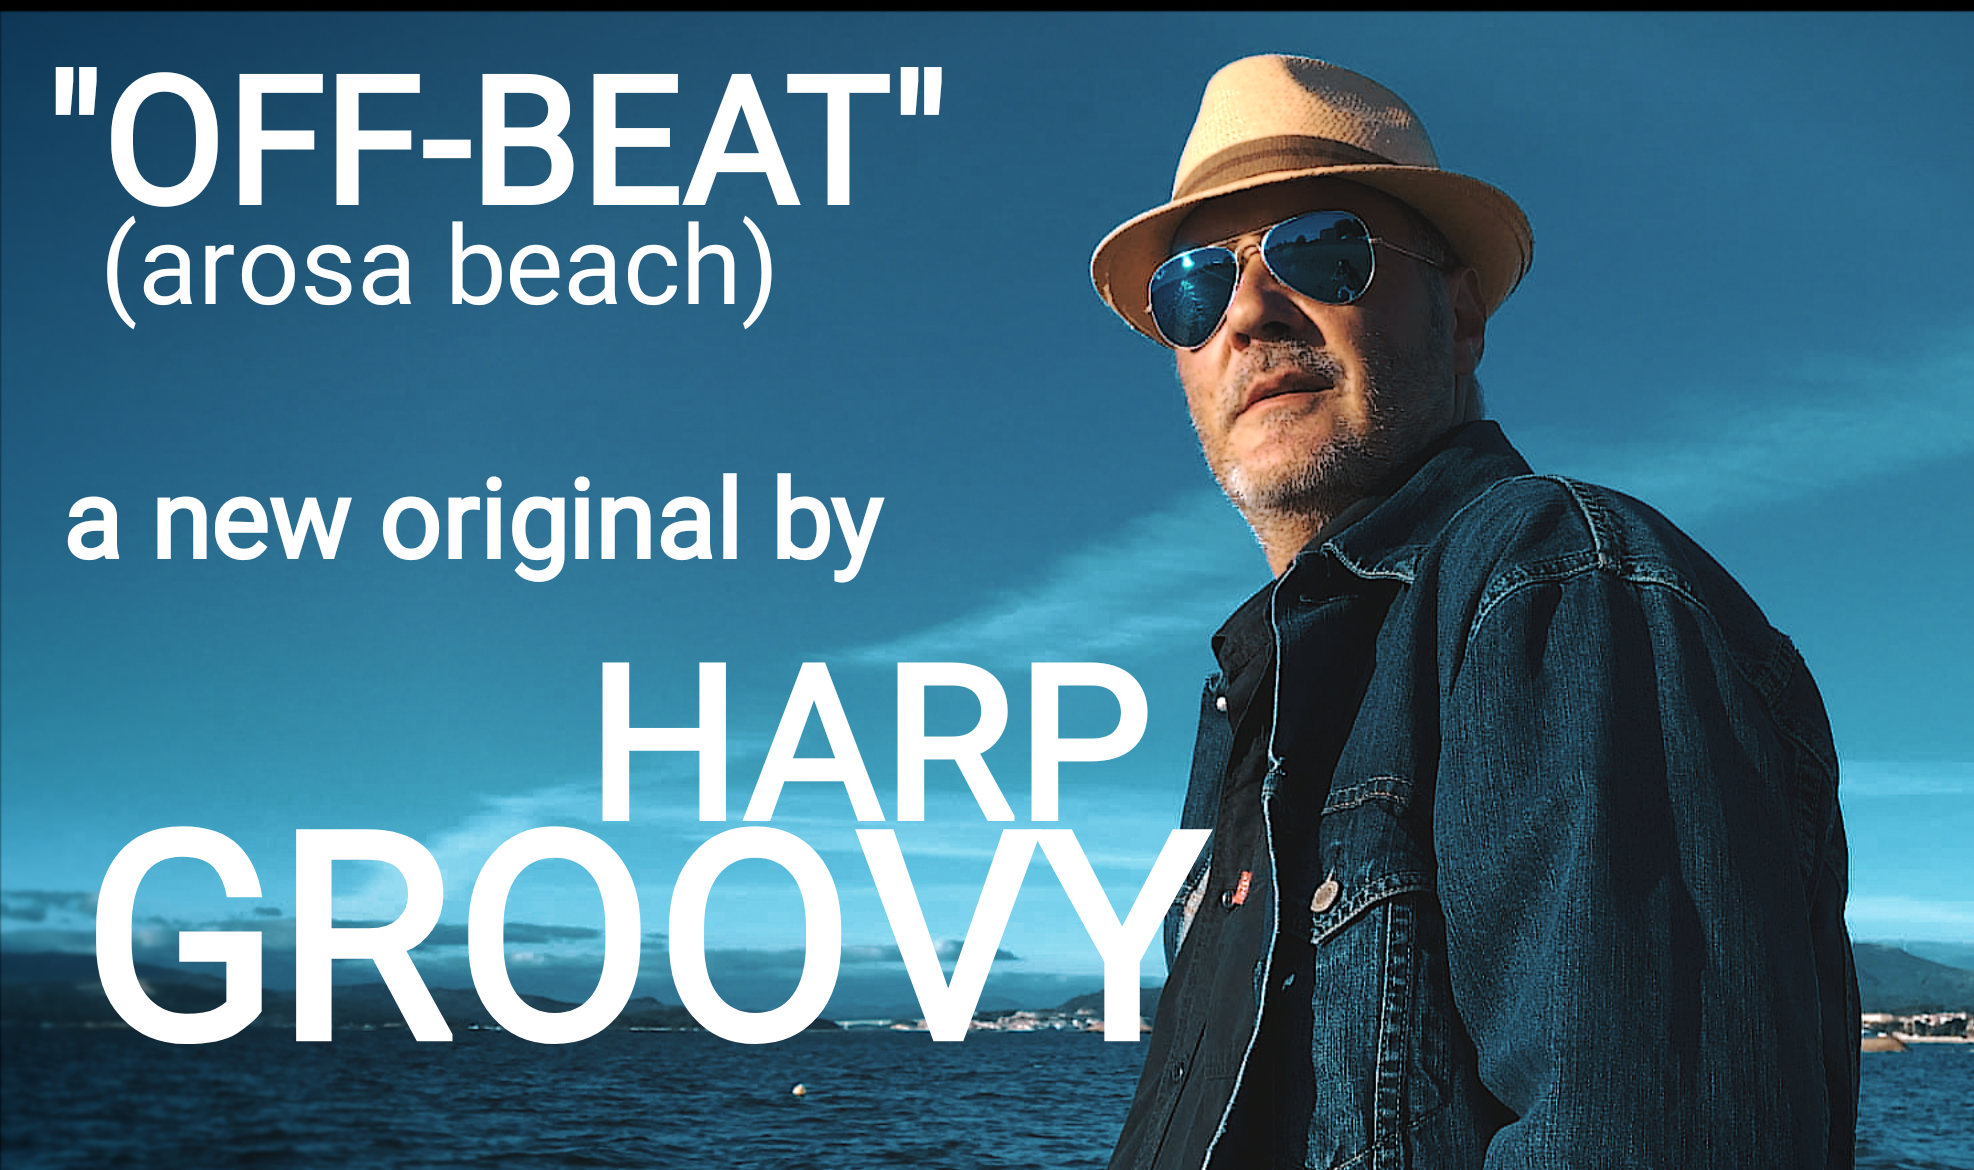 OFF-BEAT (arosa beach)